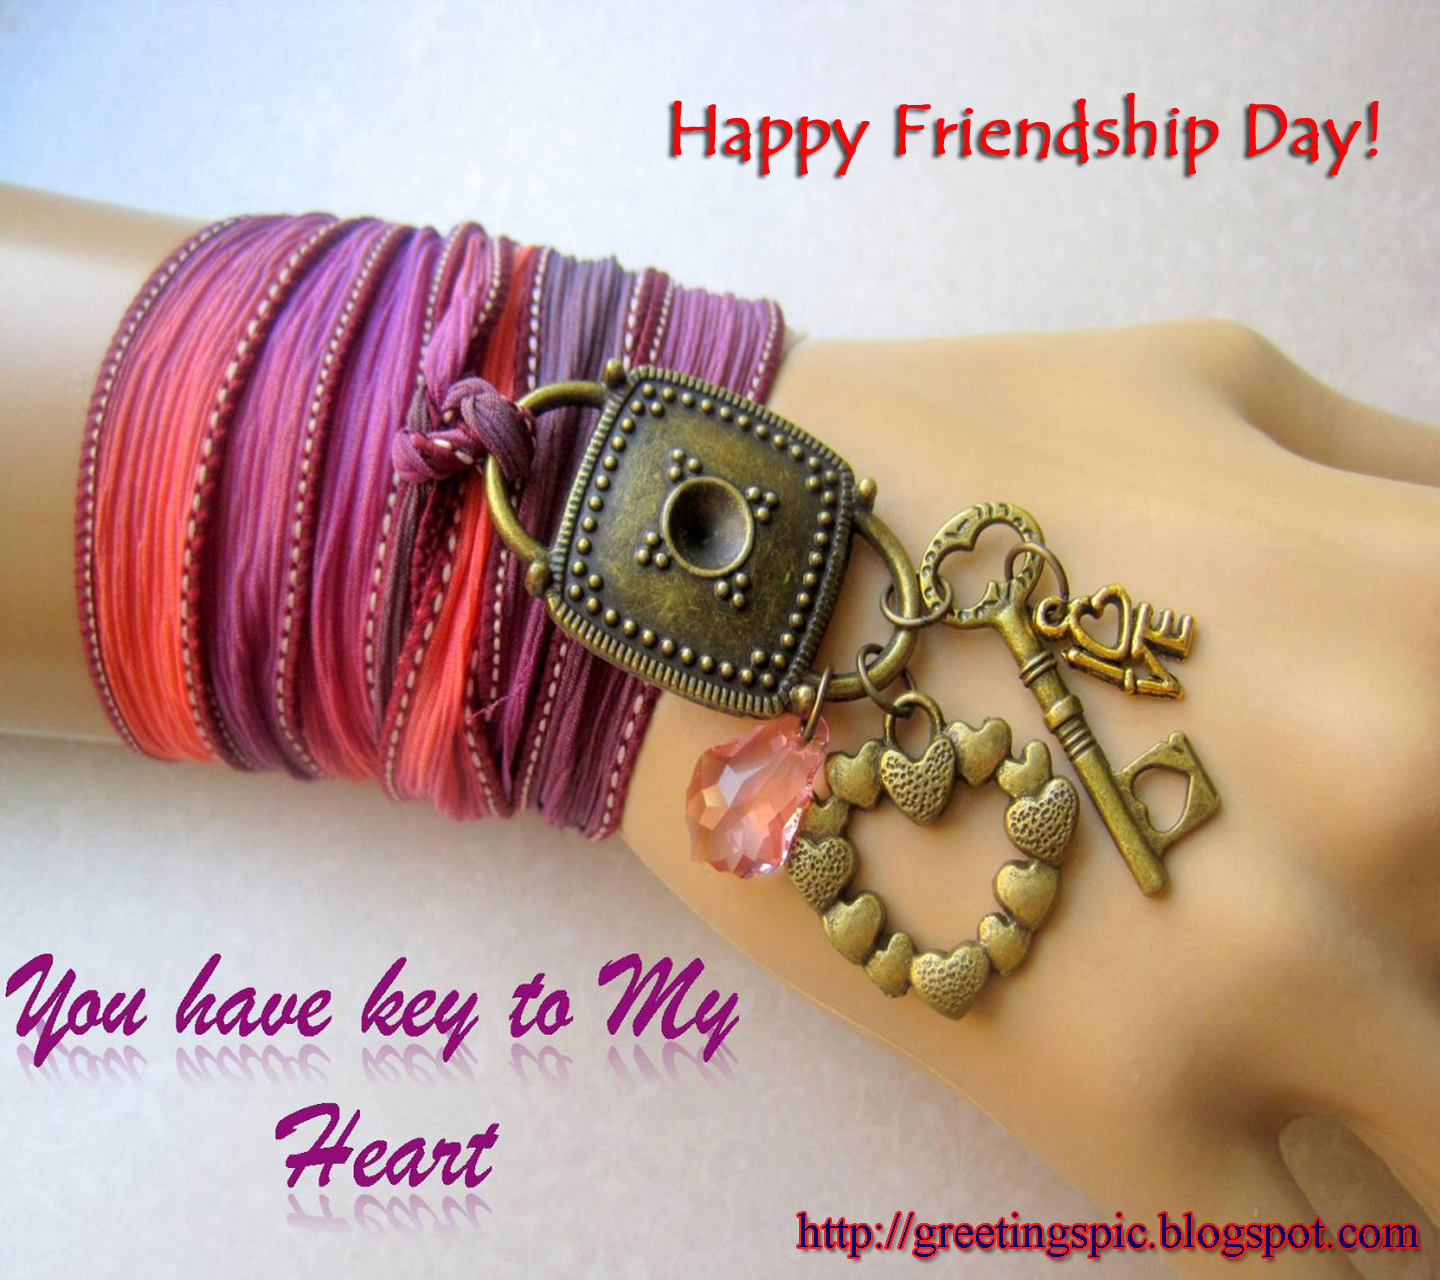 Friendship Day Pics With Quotes: Happy Friendship Day Images